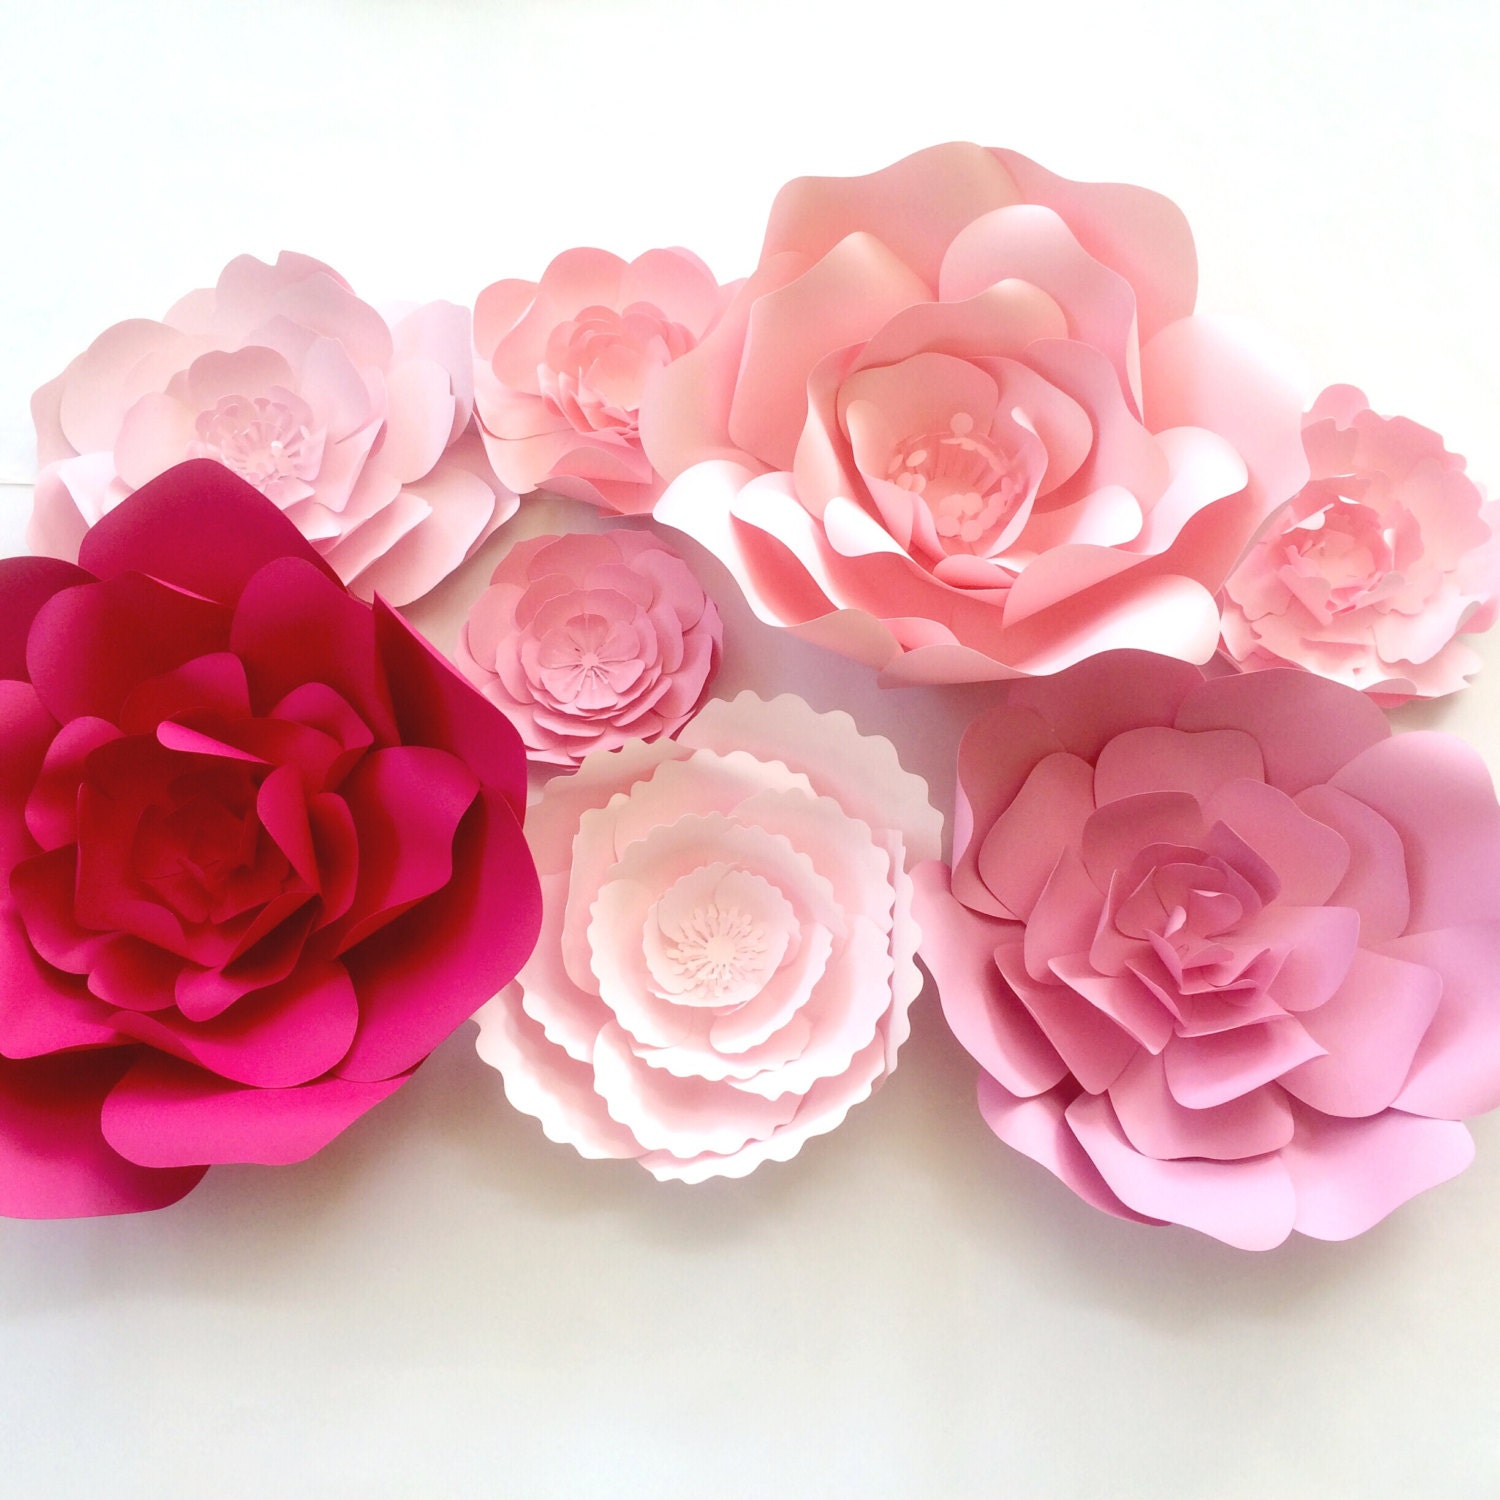 Large Flower Wall Decor : Paper flower wall decor large backdrop giant